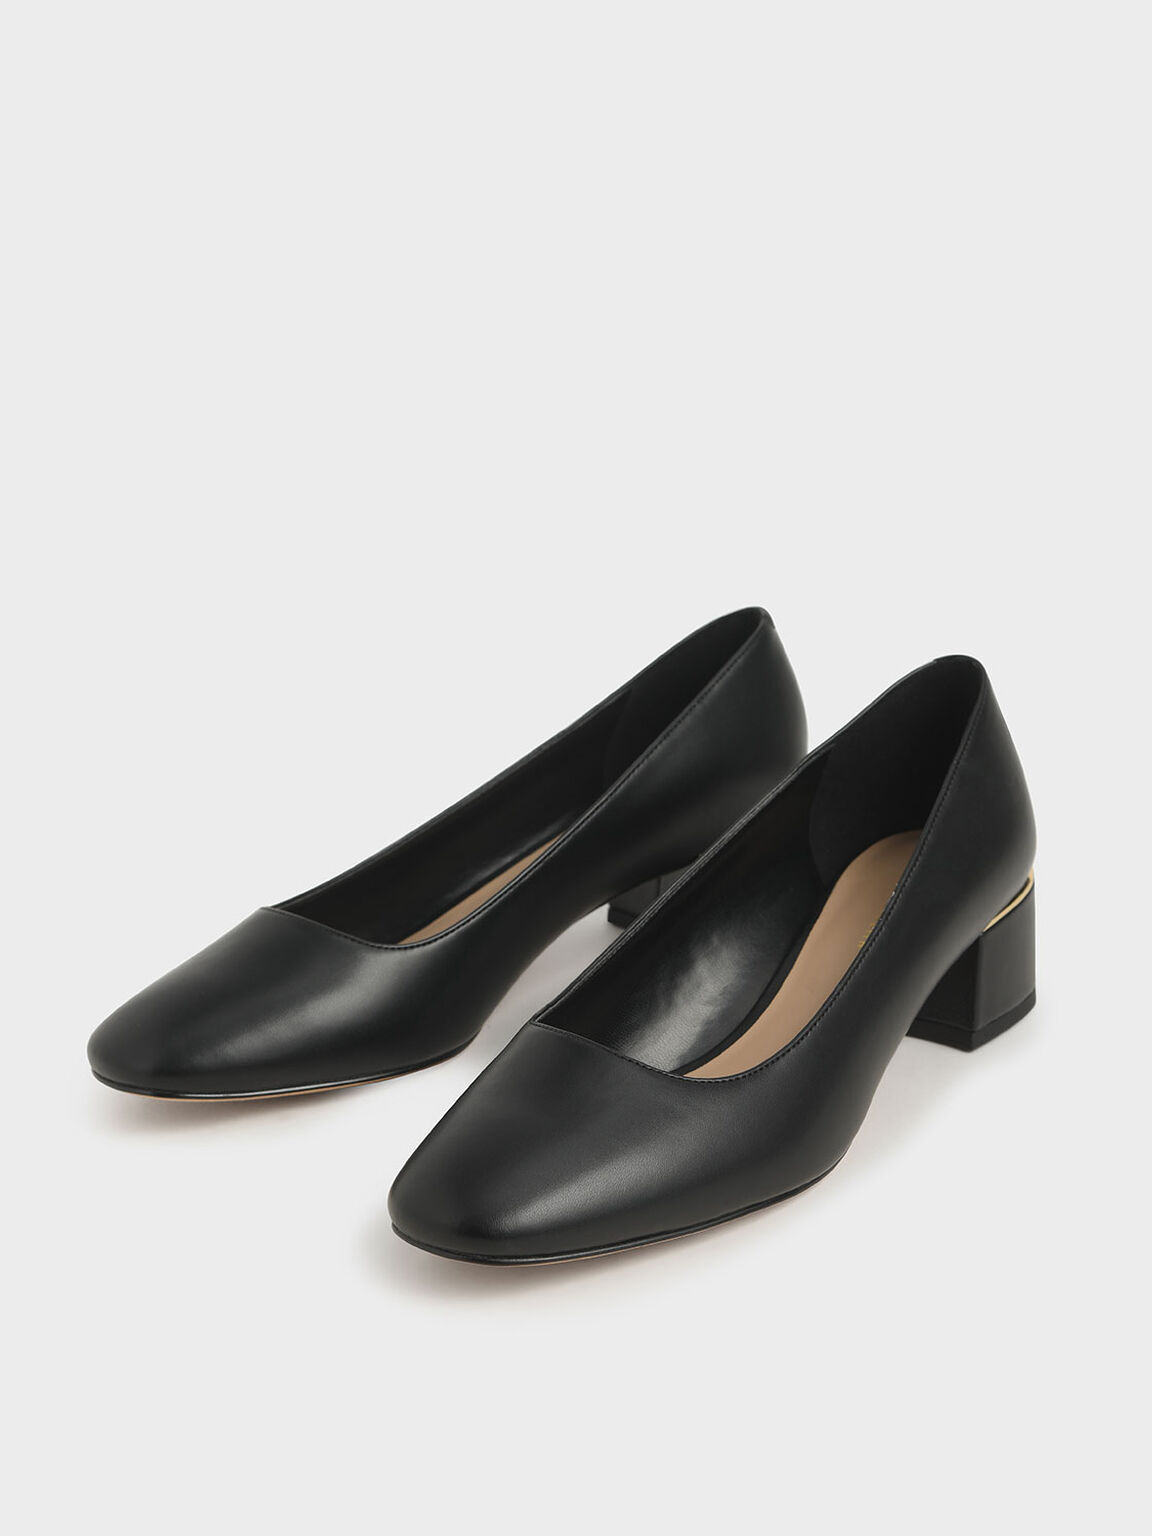 Square Toe Block Heel Pumps, Black, hi-res